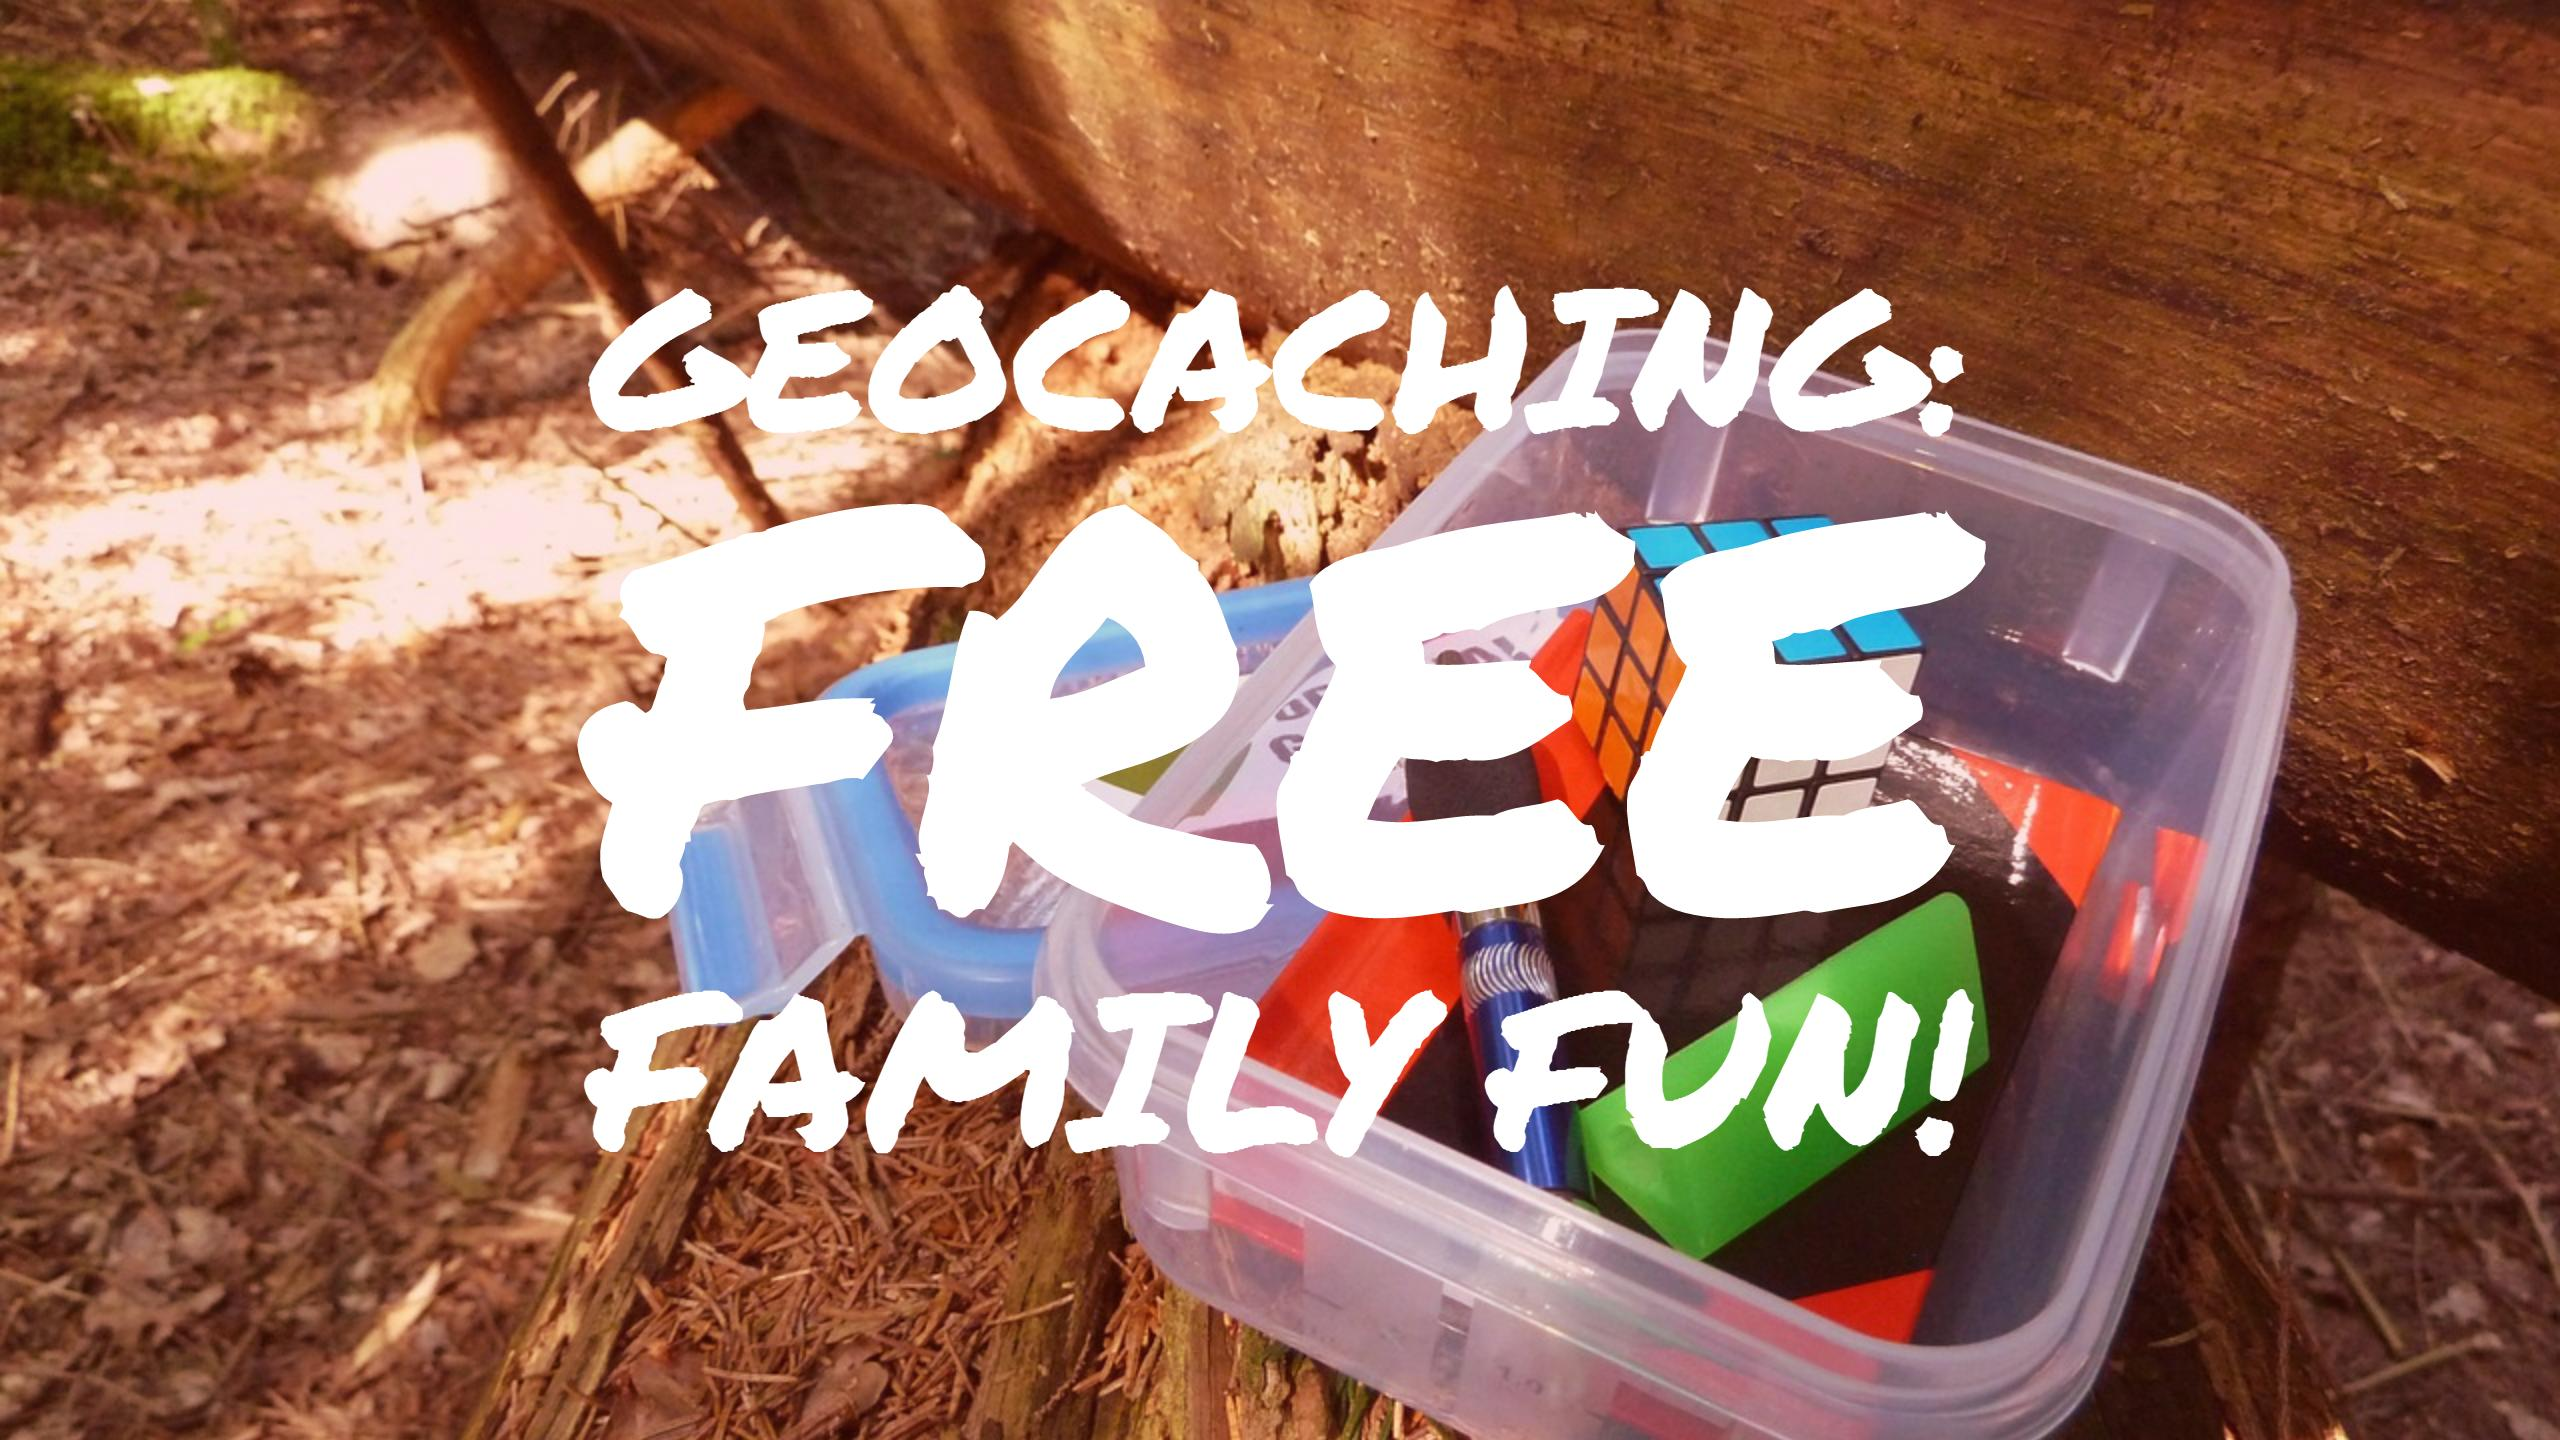 Free Stuff Friday Geocaching is free family fun from Fiscal Fitness PHoenix